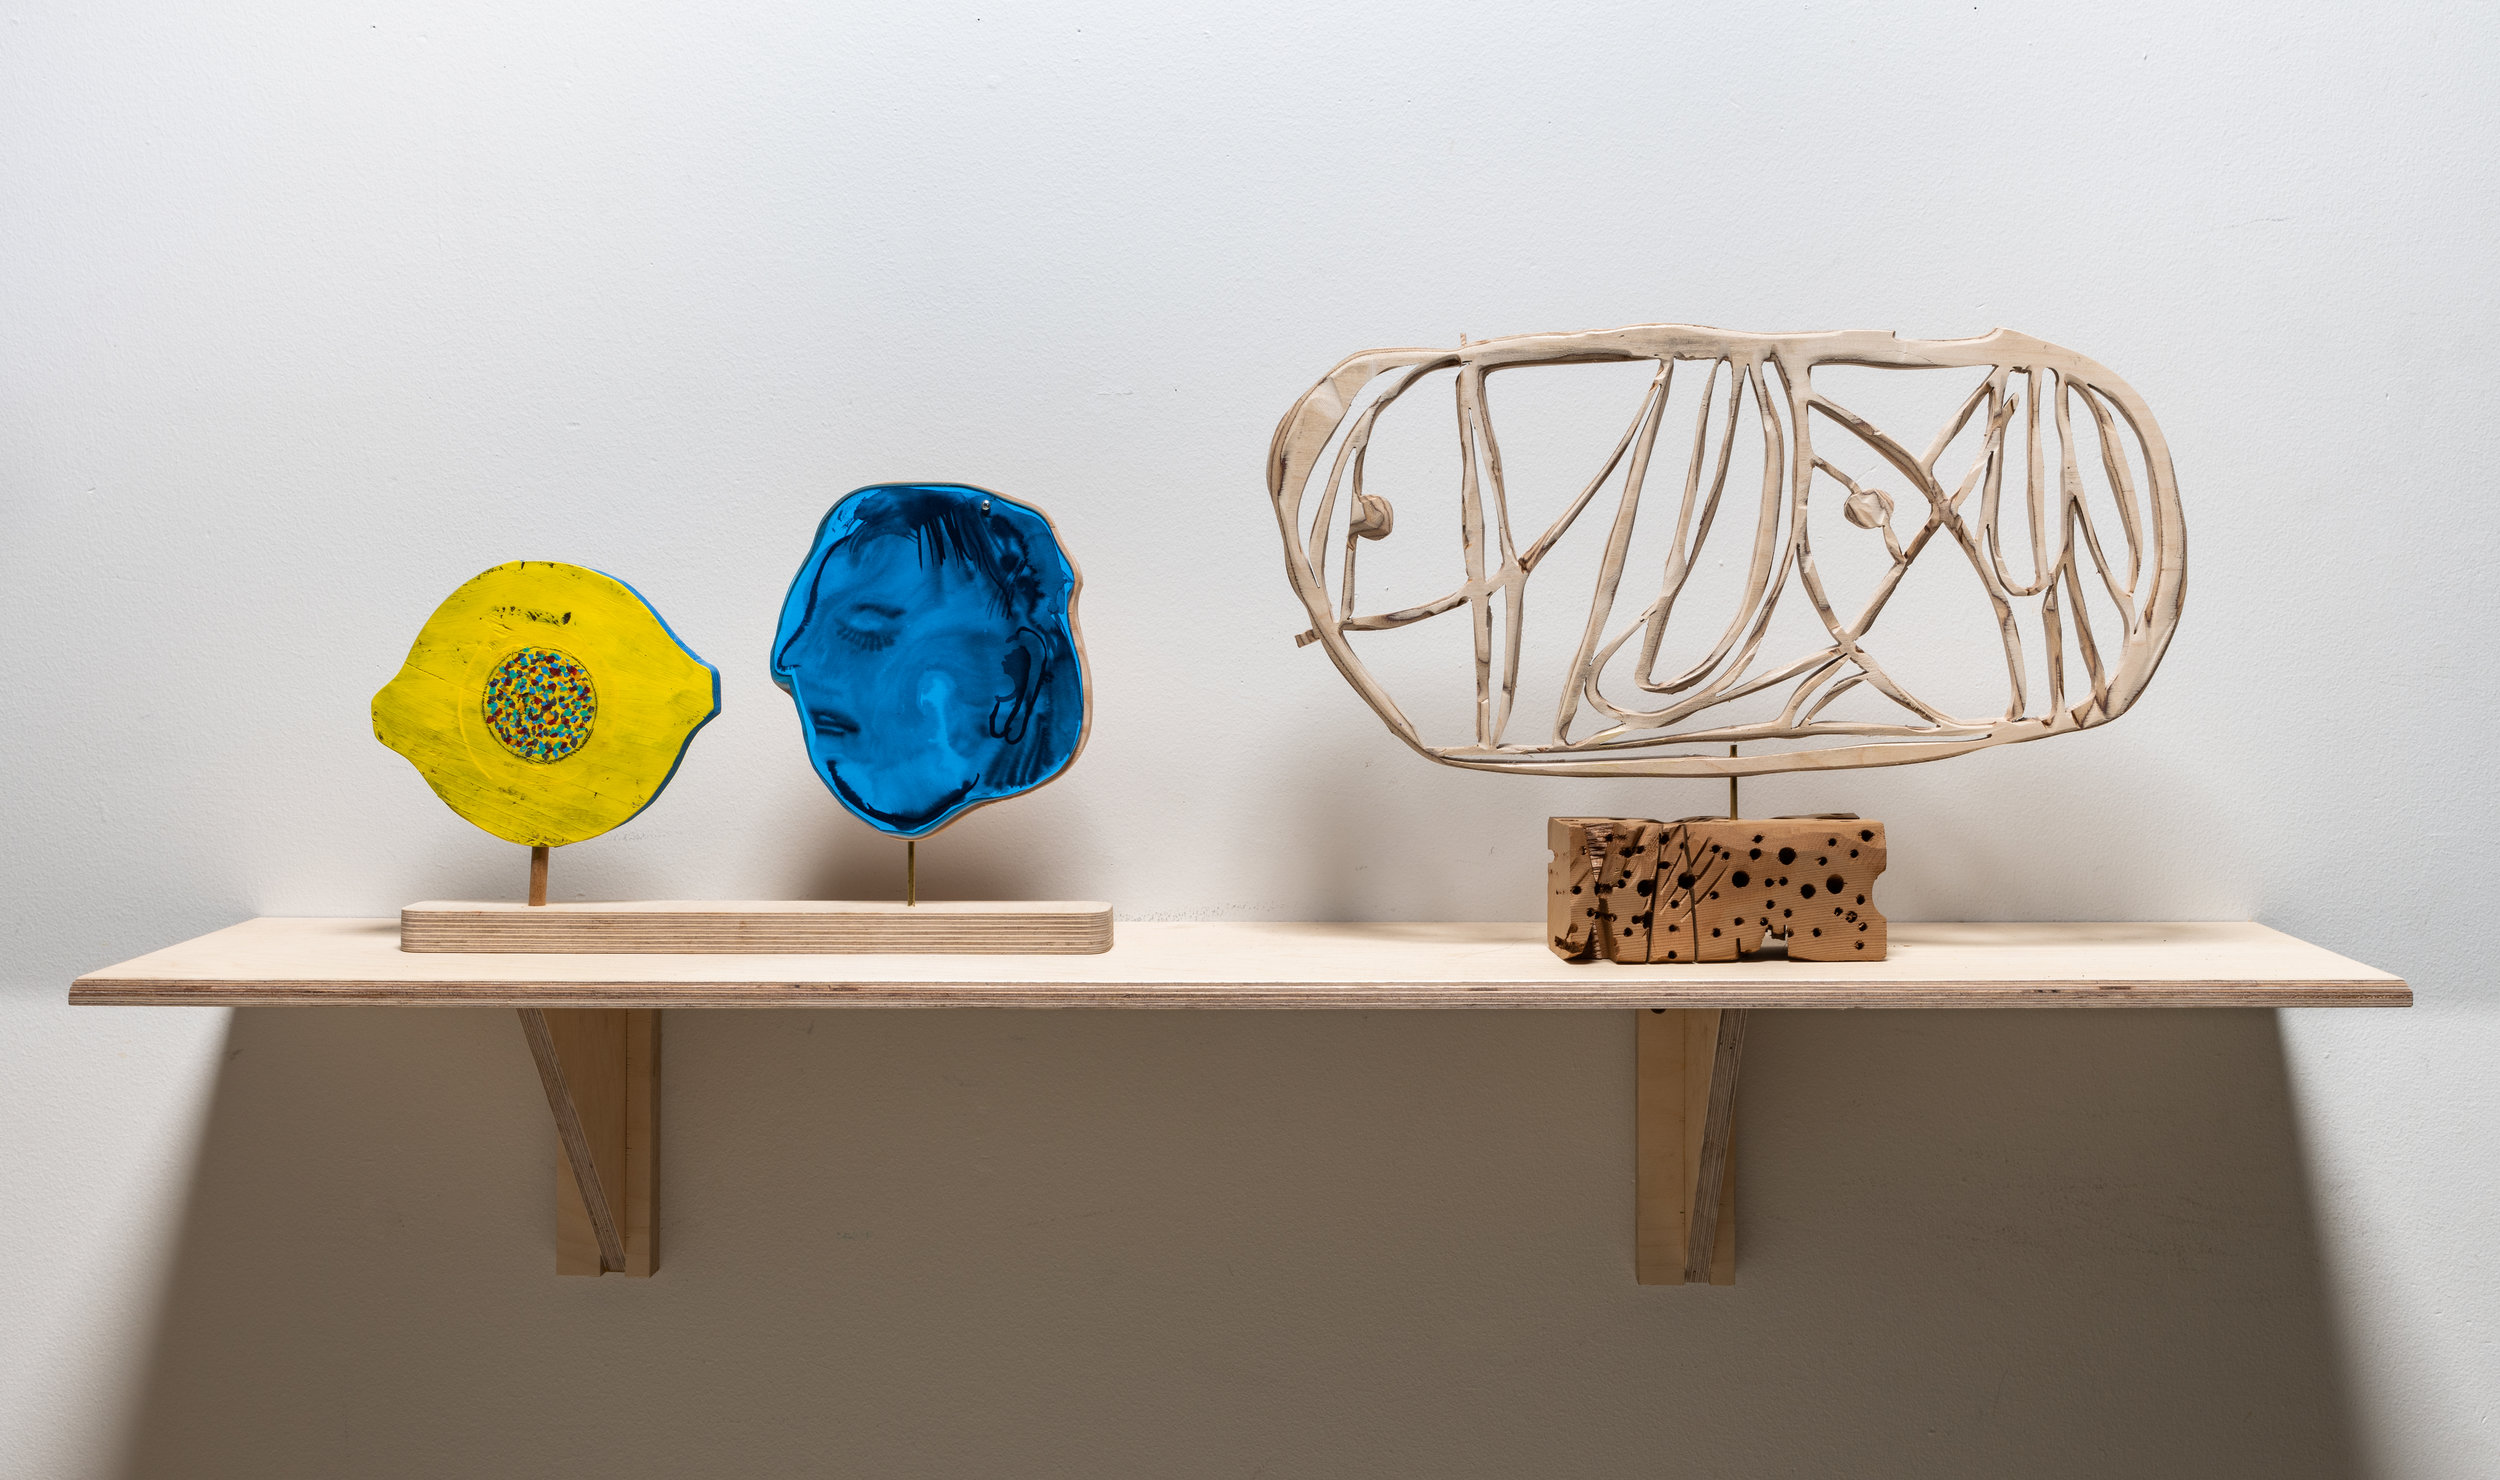 The Taste Of Lemon  (L),  Untitled  (R)  2019  mixed media, dimensions variable